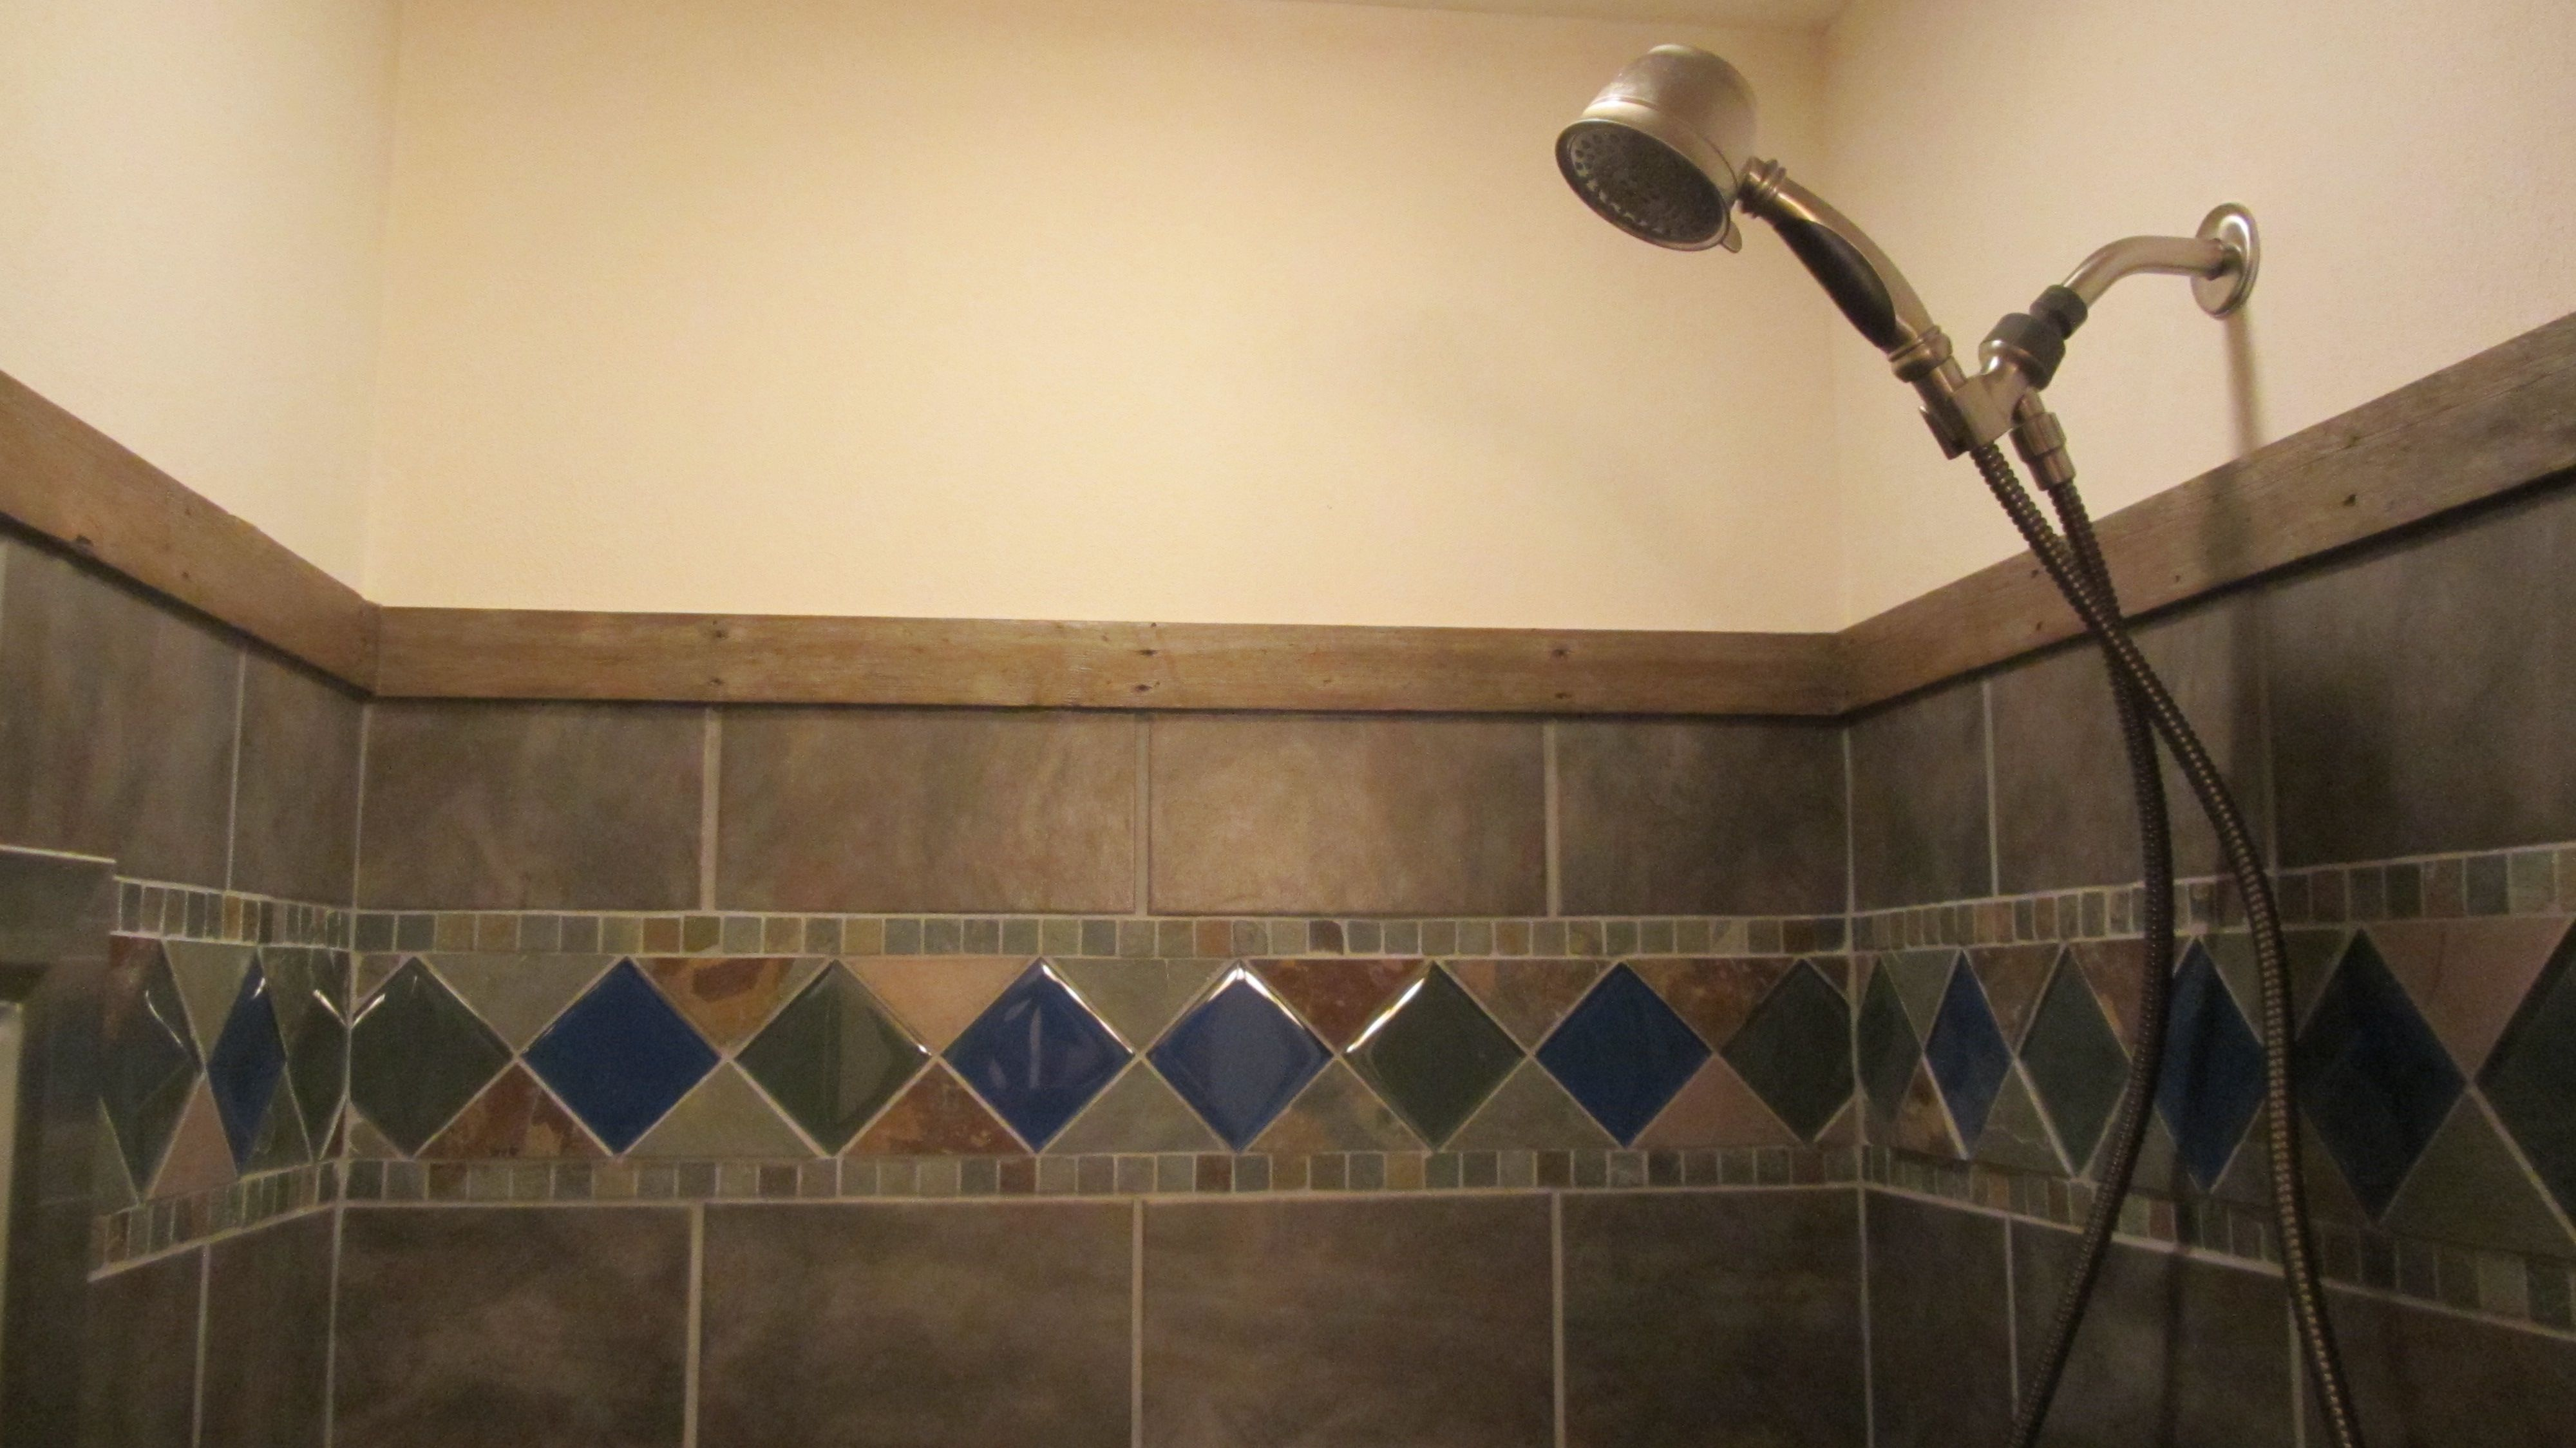 DIY Shower Tile | Anna Burrows Mission Memos